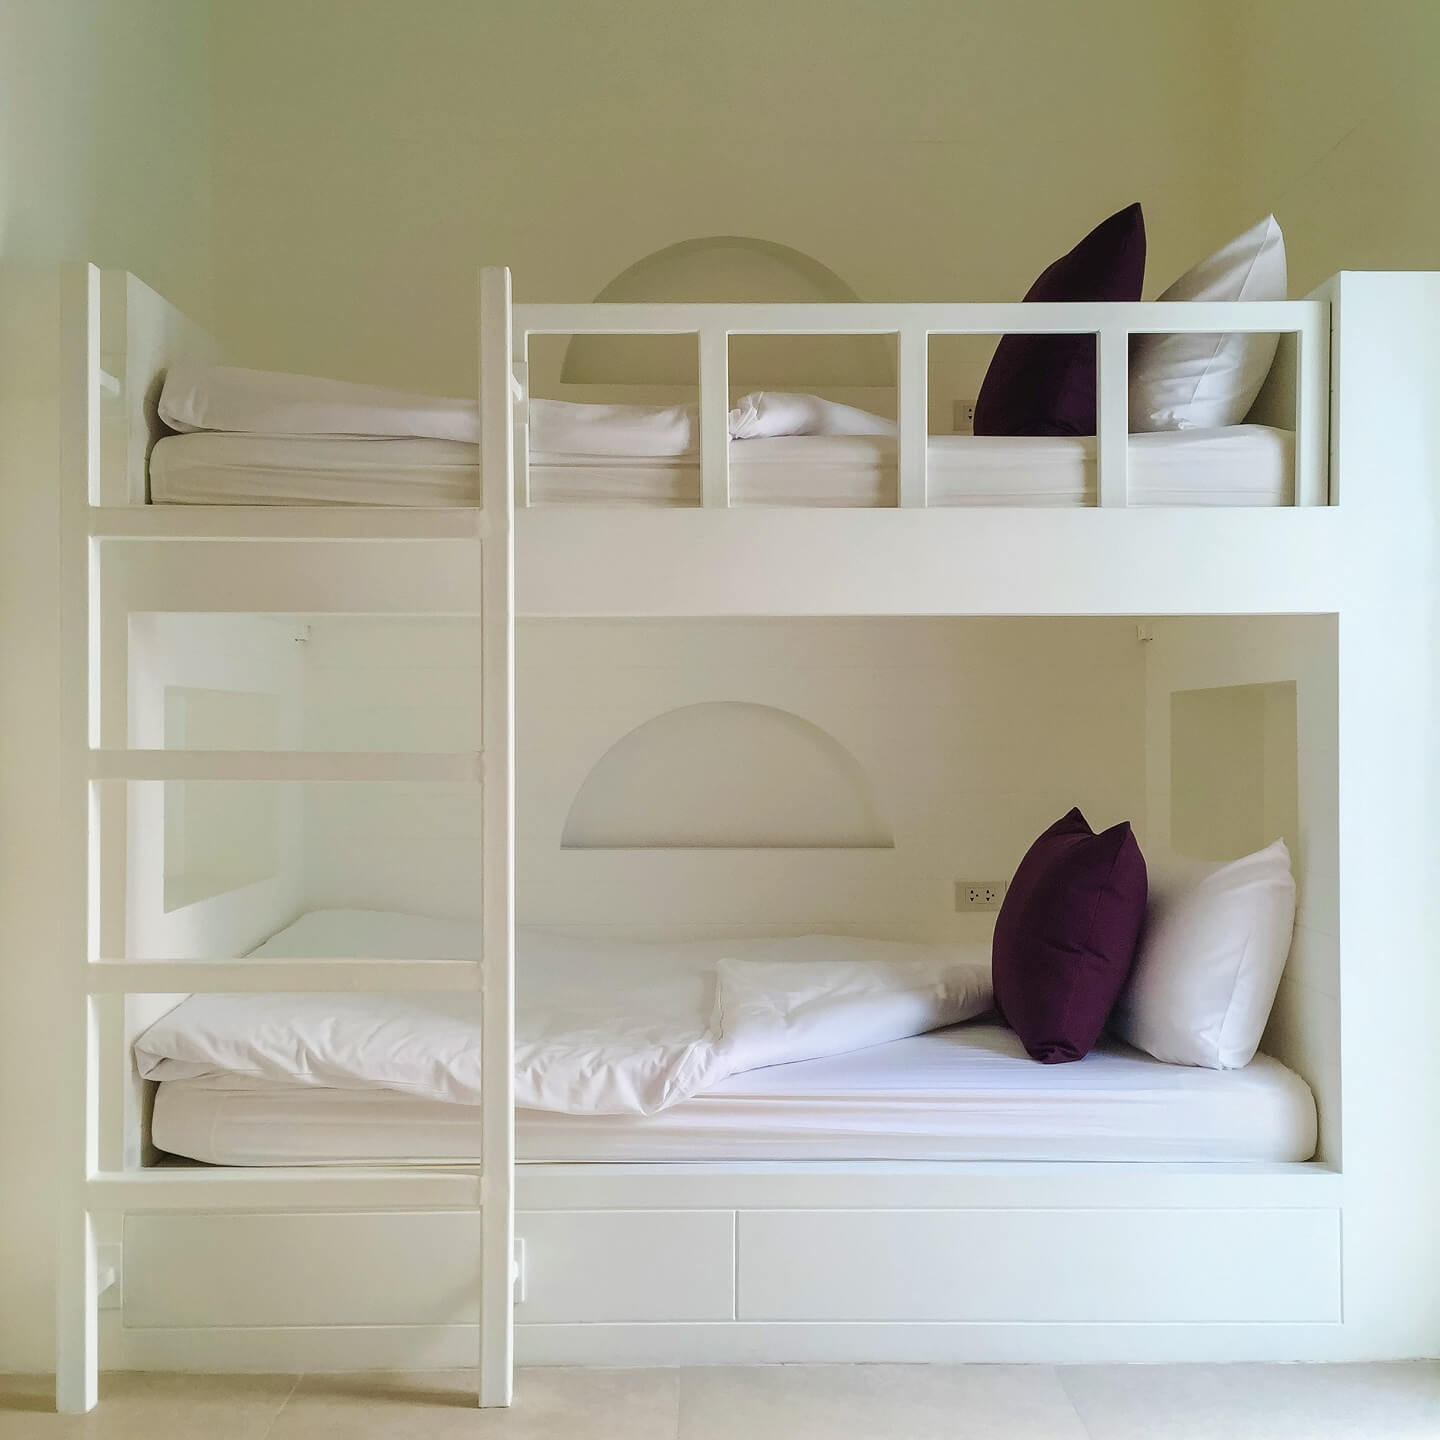 decoration ideas for bedroom with bunk beds